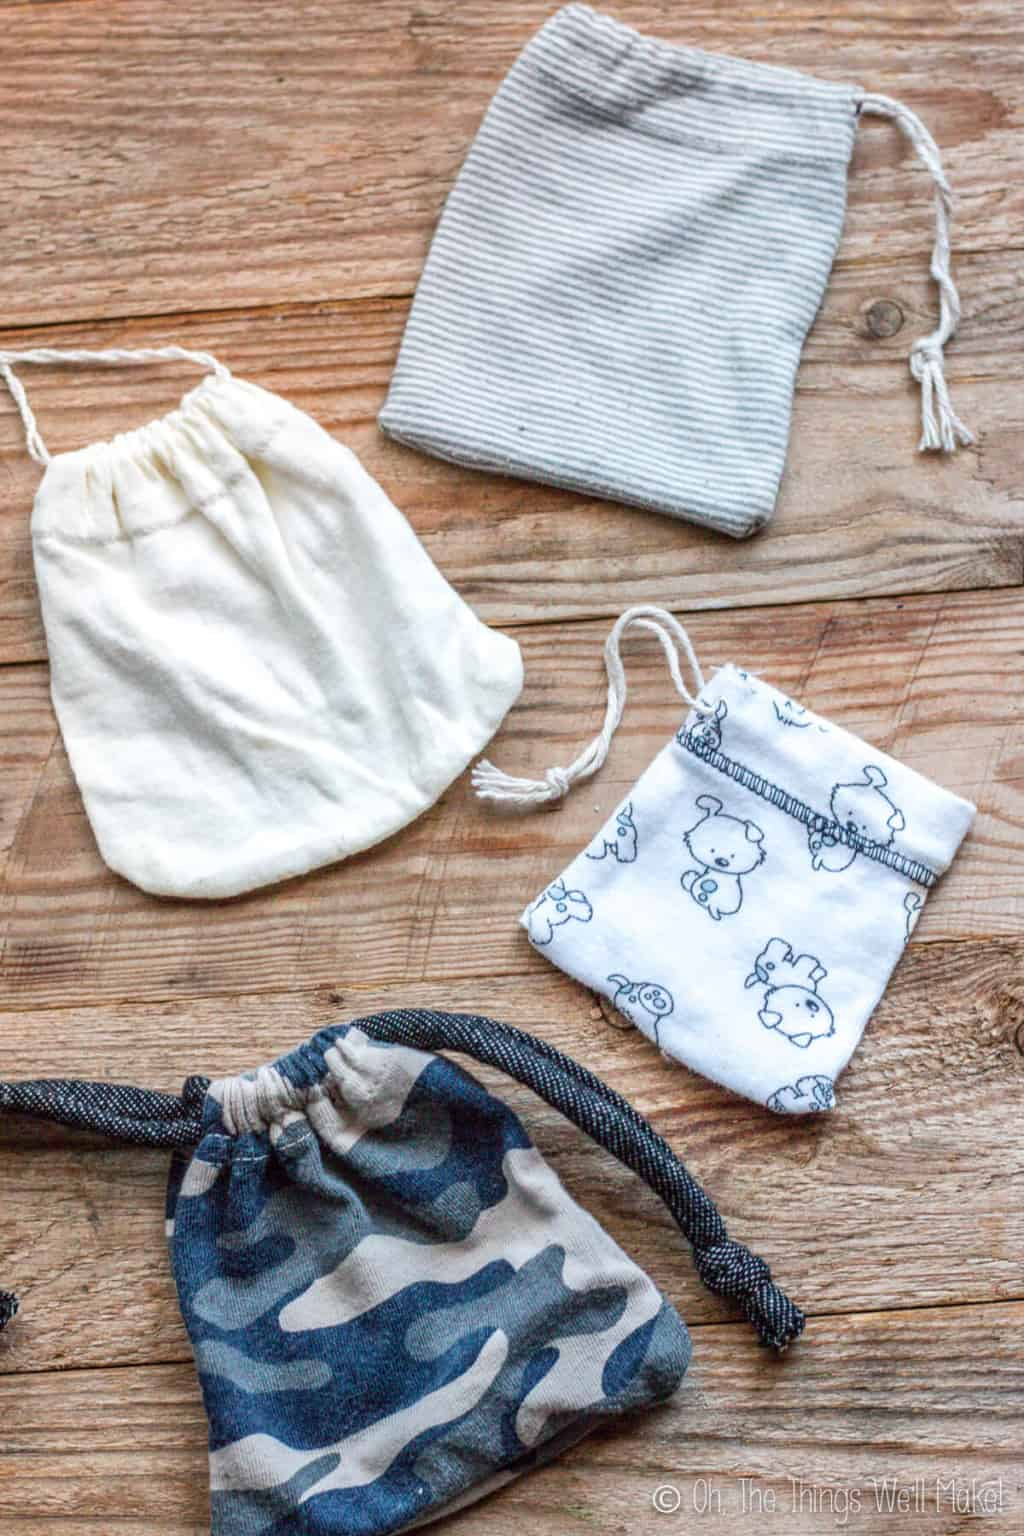 Four different drawstring pouches made form the sleeves of baby clothes, laid on a wood surface. From top to bottom: a grey striped pouch, a white one, a white with dog print, and a camouflage print pouch.